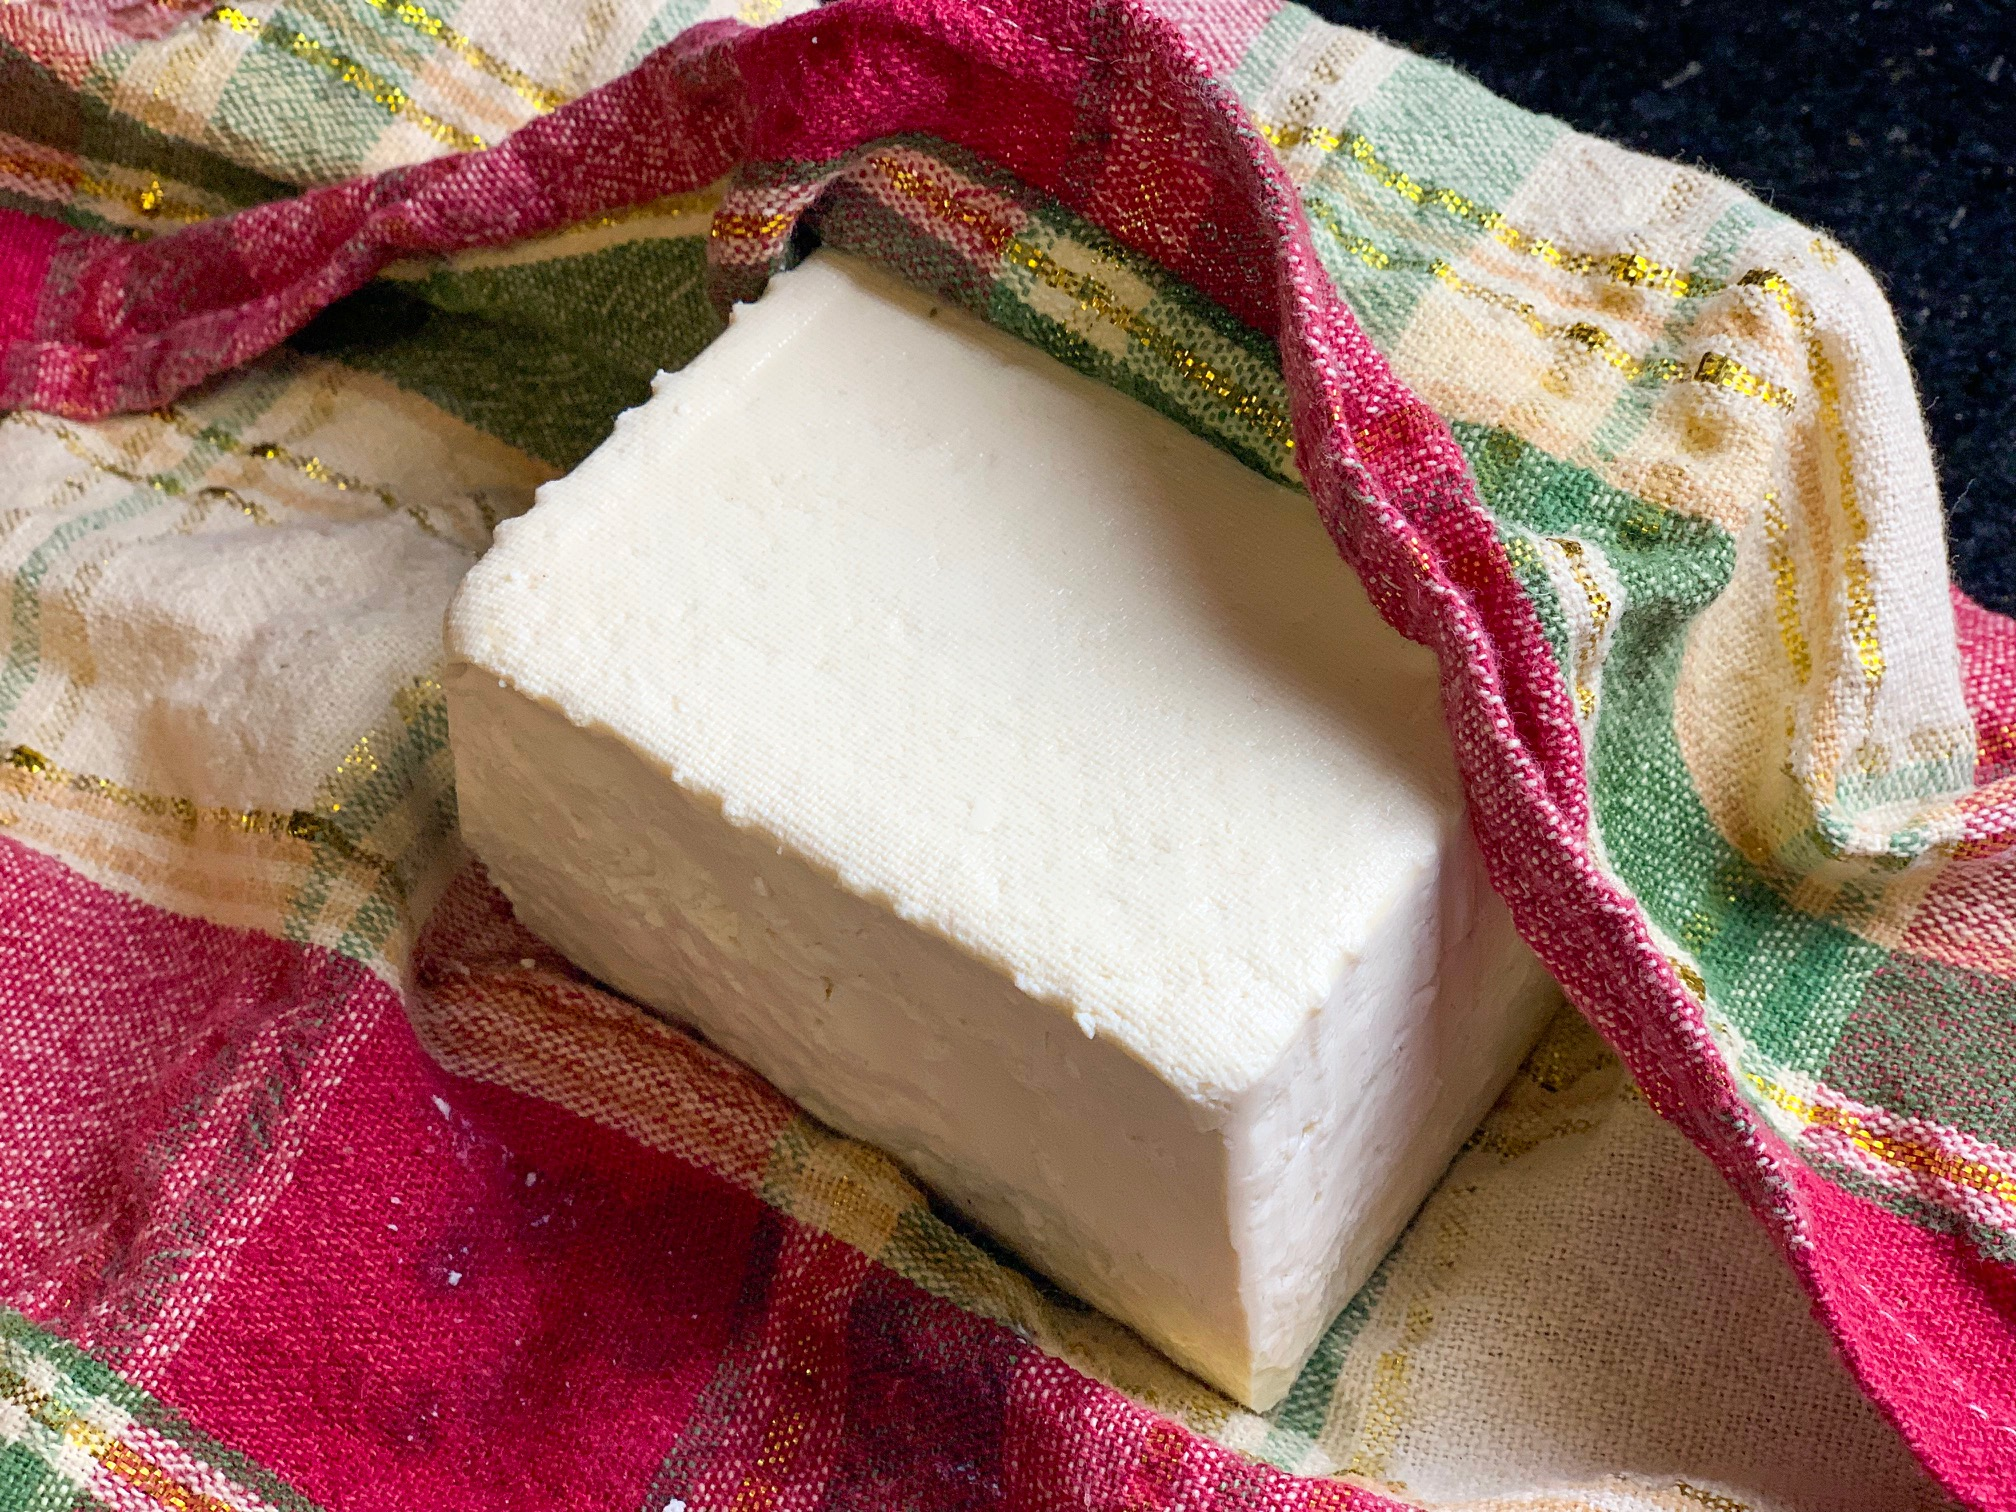 draining tofu in a towel ready for prep